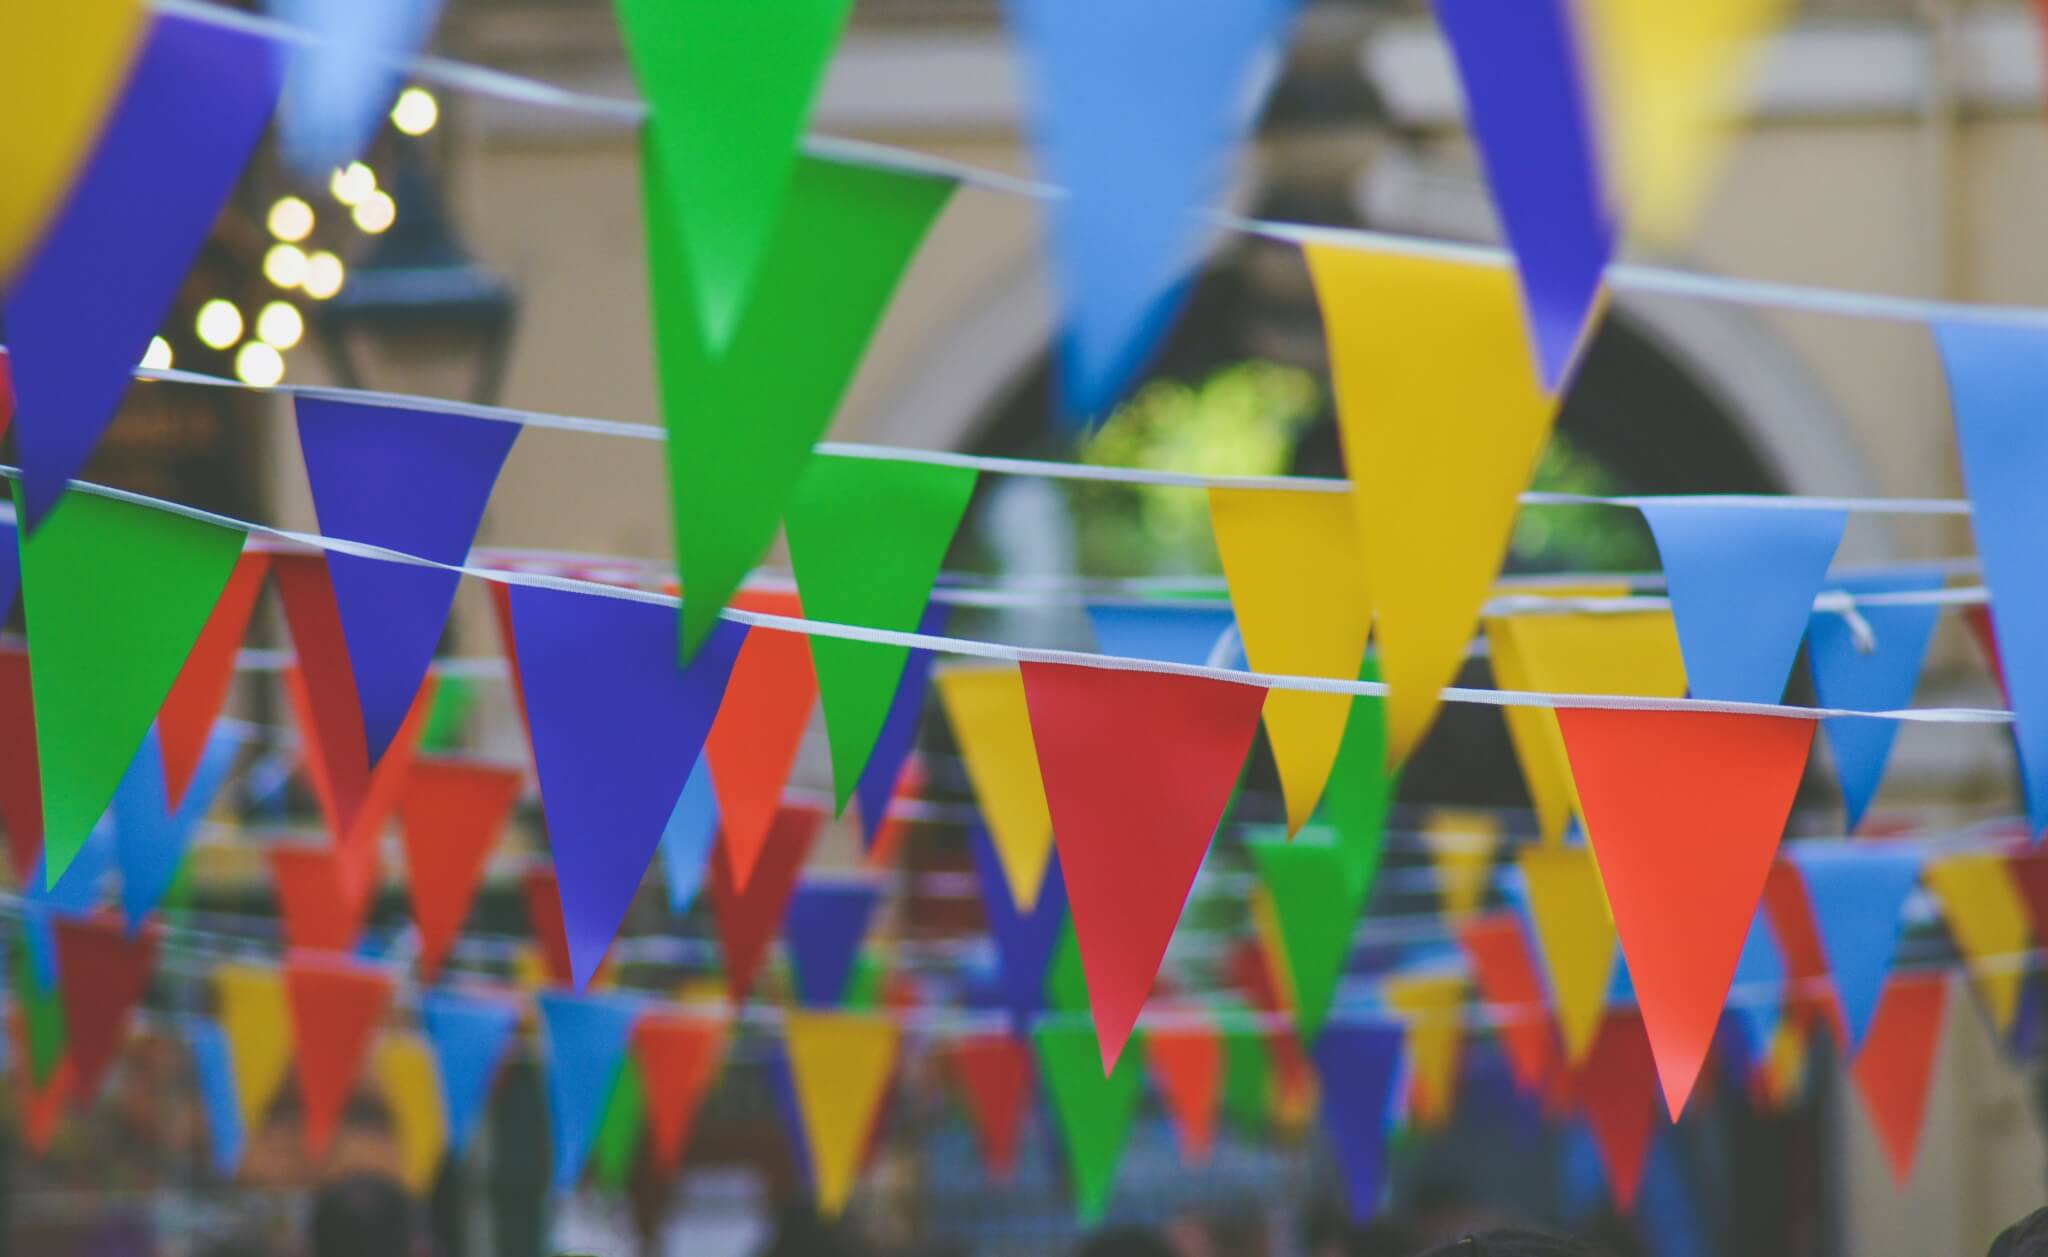 How to Market Your Brand Using National Observance Days